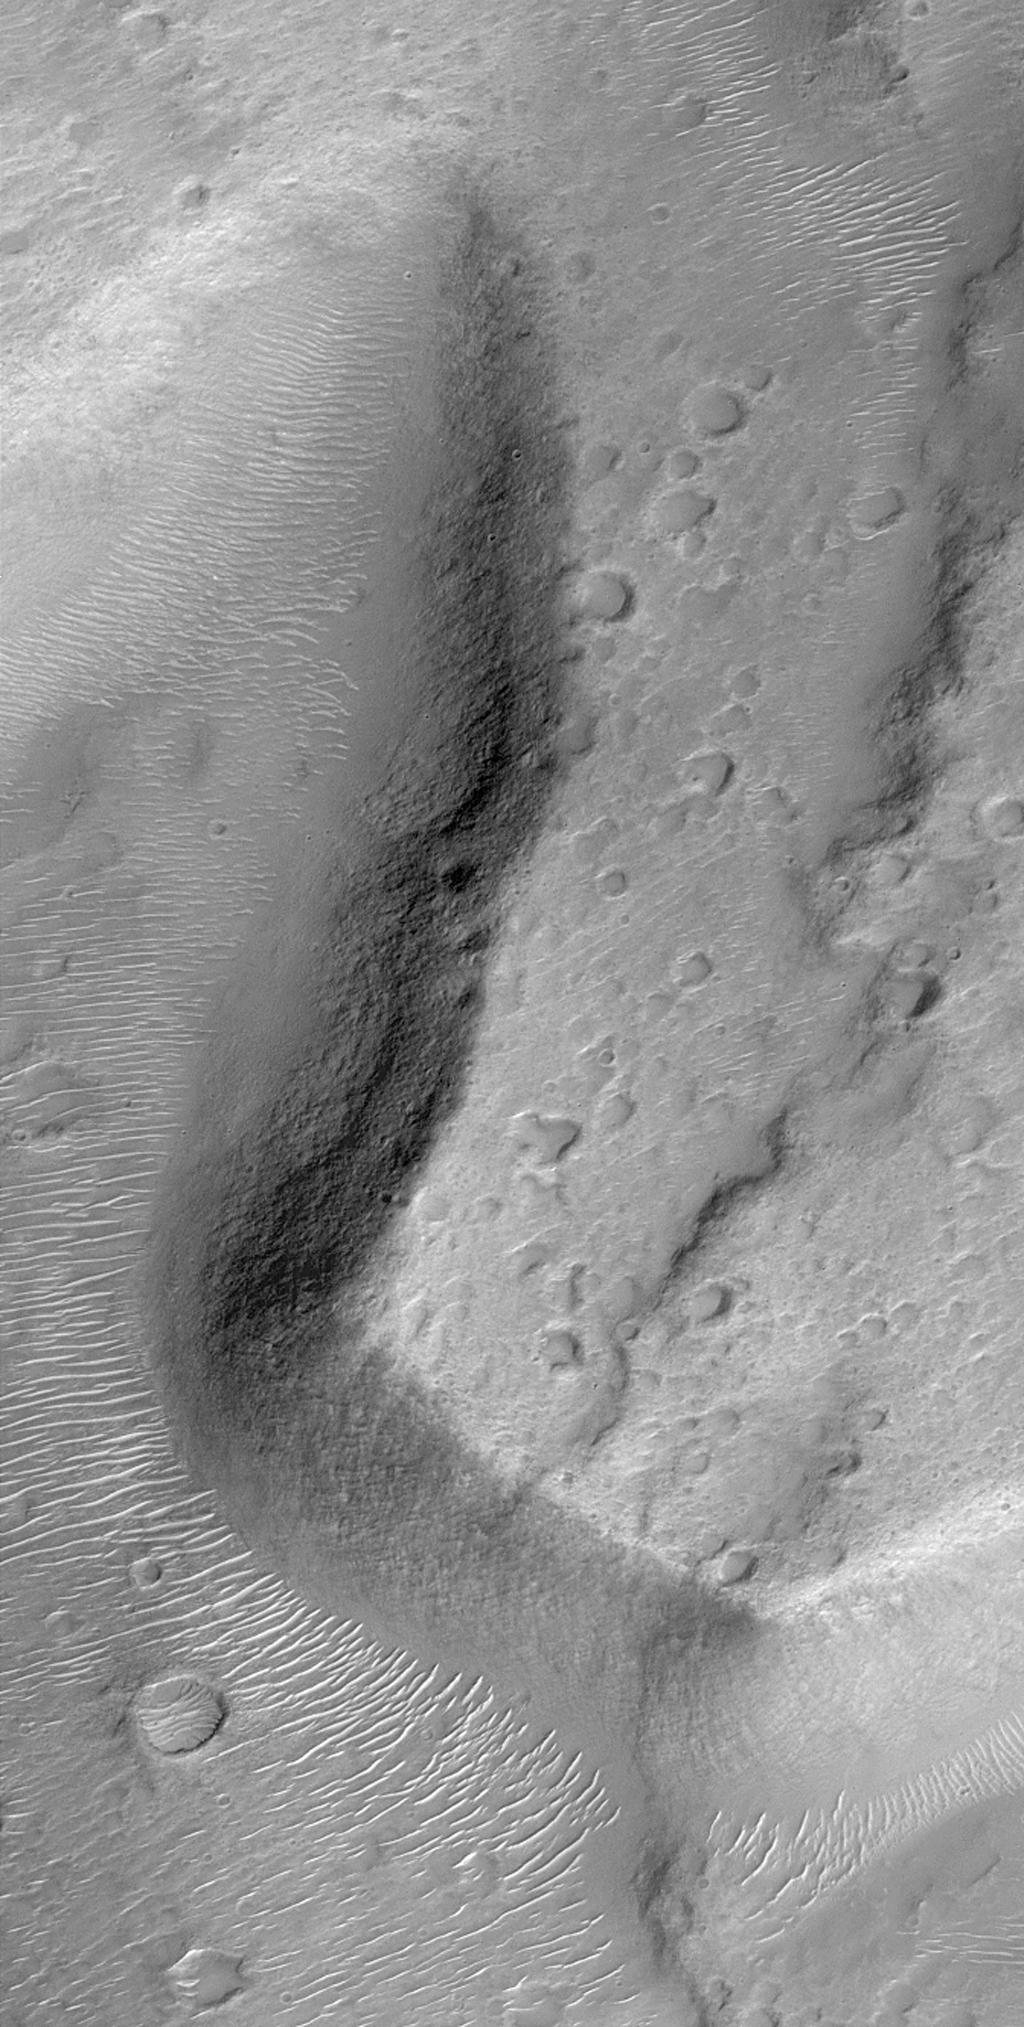 NASA's Mars Global Surveyor shows escarpments and valleys on the lower northeast flank of Tyrrhenna Patera, thought to be an ancient volcano located in Hesperia Planum in the martian southern hemisphere.